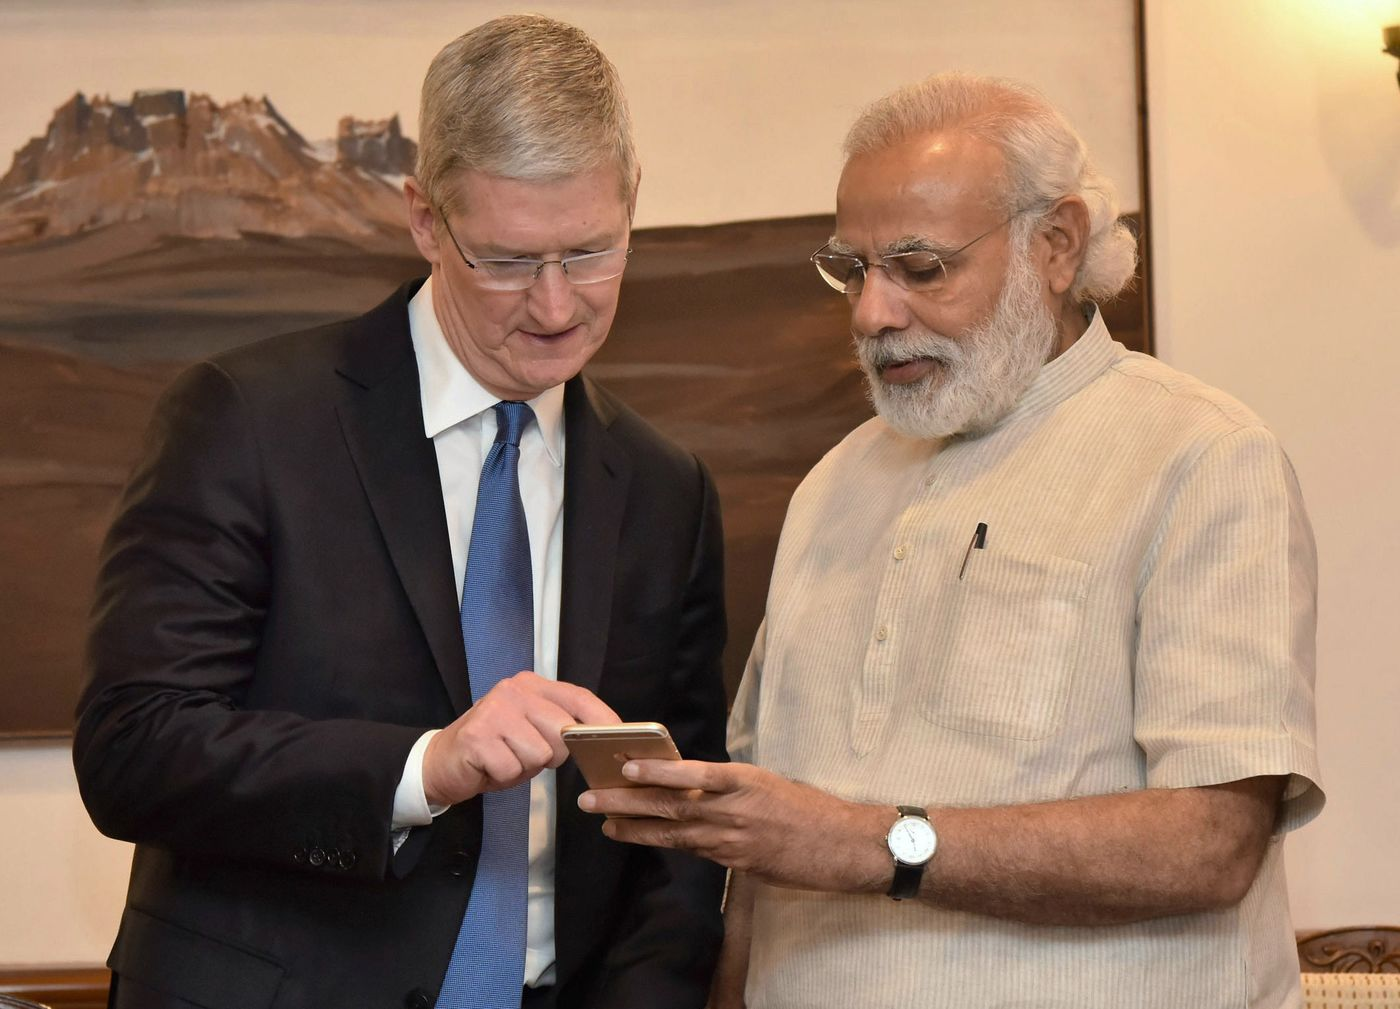 Apple To Launch Online Shopping Store in India Next Month: Bloomberg